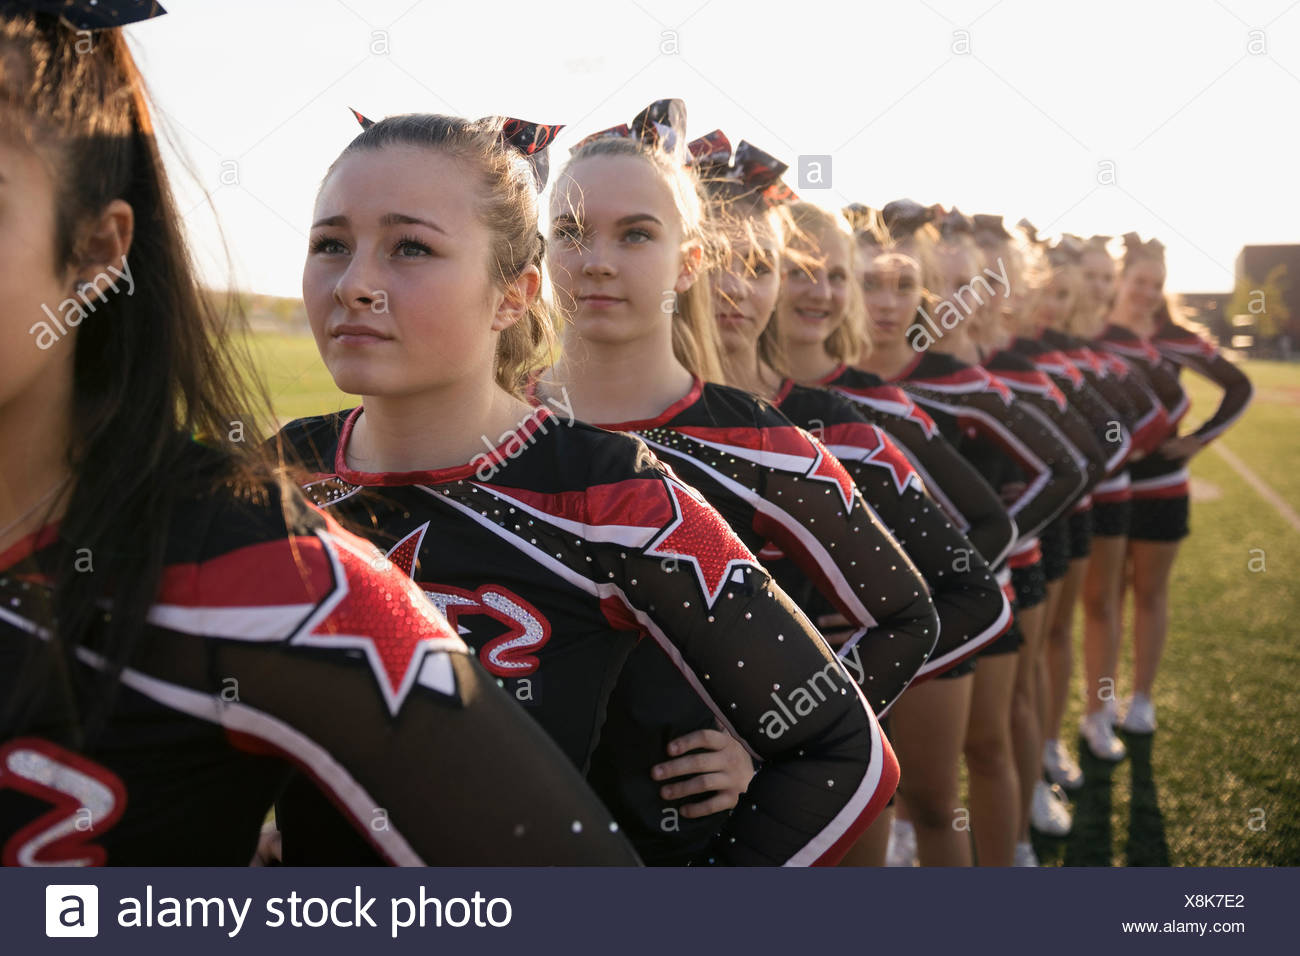 Teenage girl high school cheerleading team poised, standing in a row - Stock Image